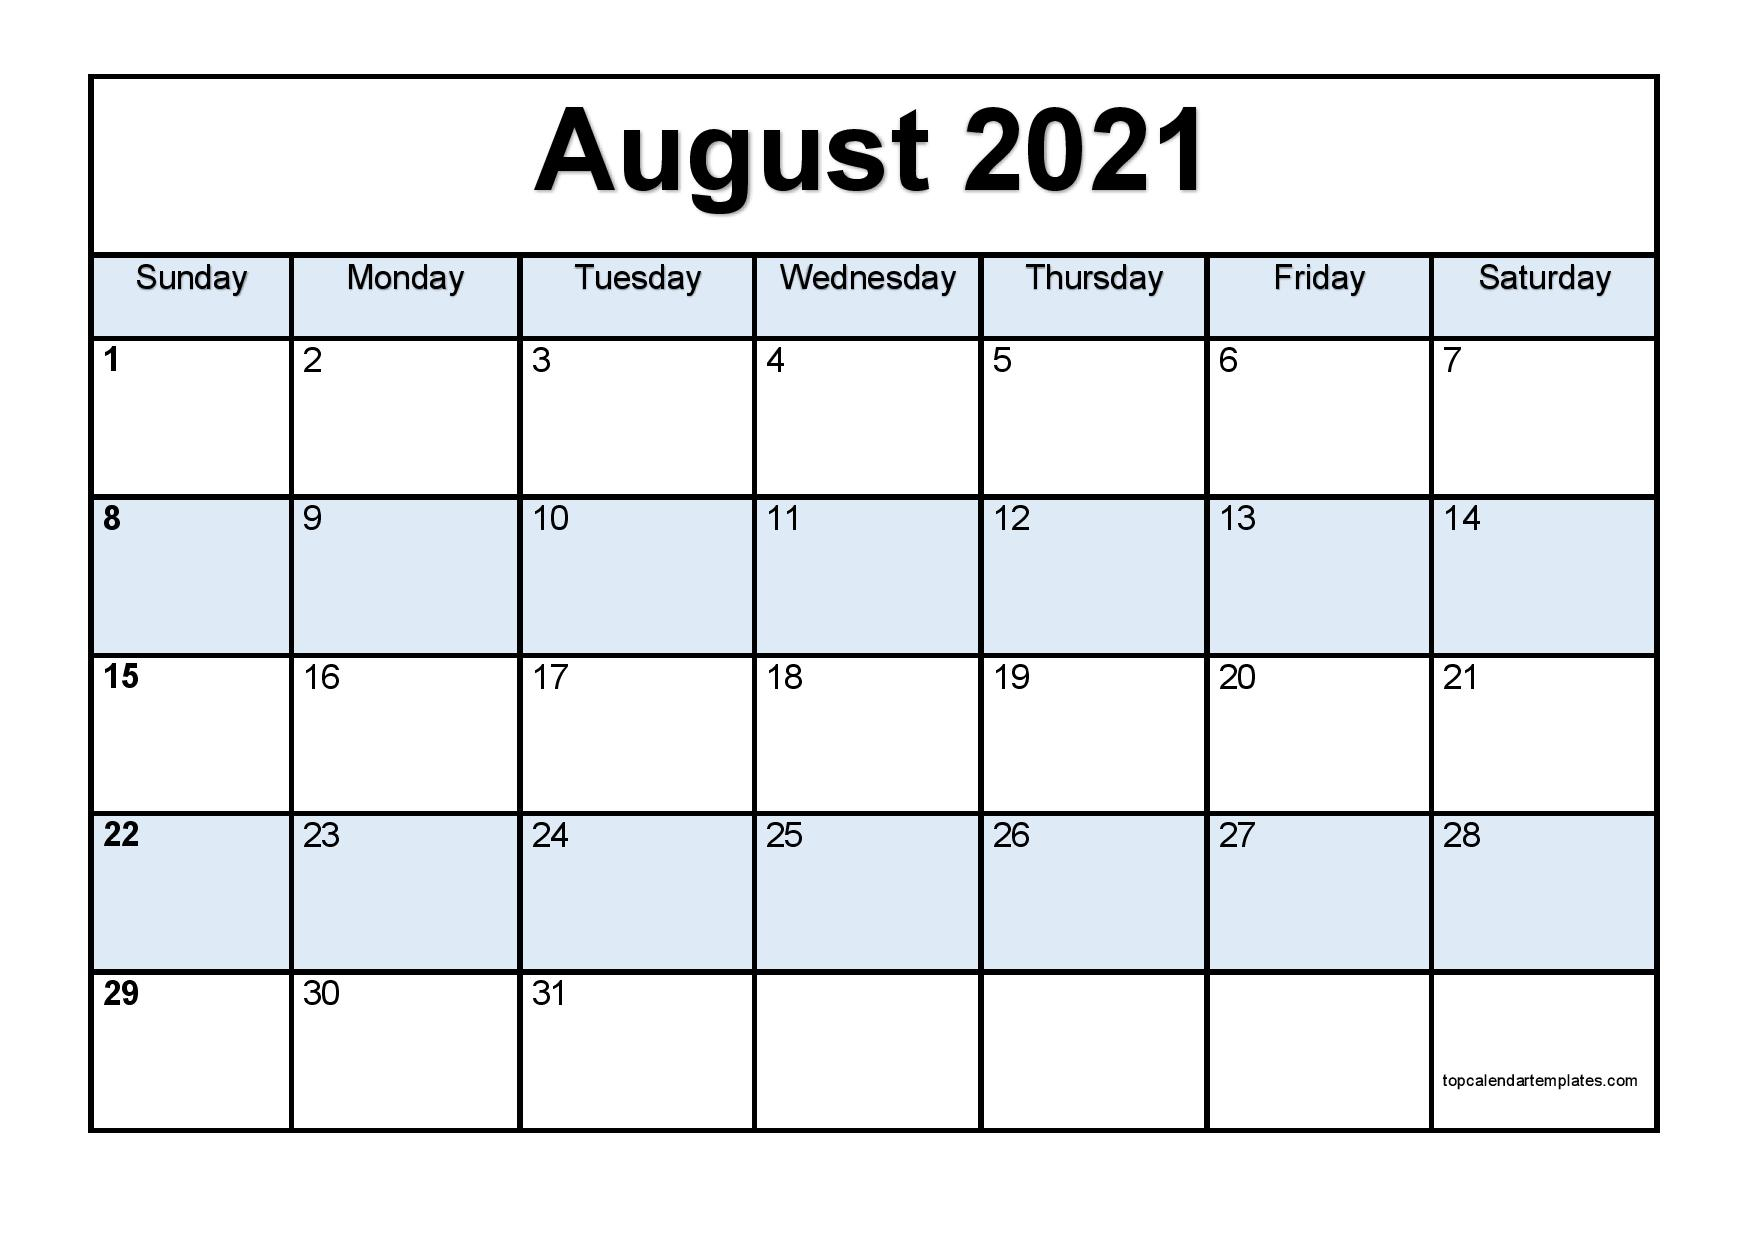 Free August 2021 Printable Calendar  Monthly Templates intended for August 2021 Calendar Print